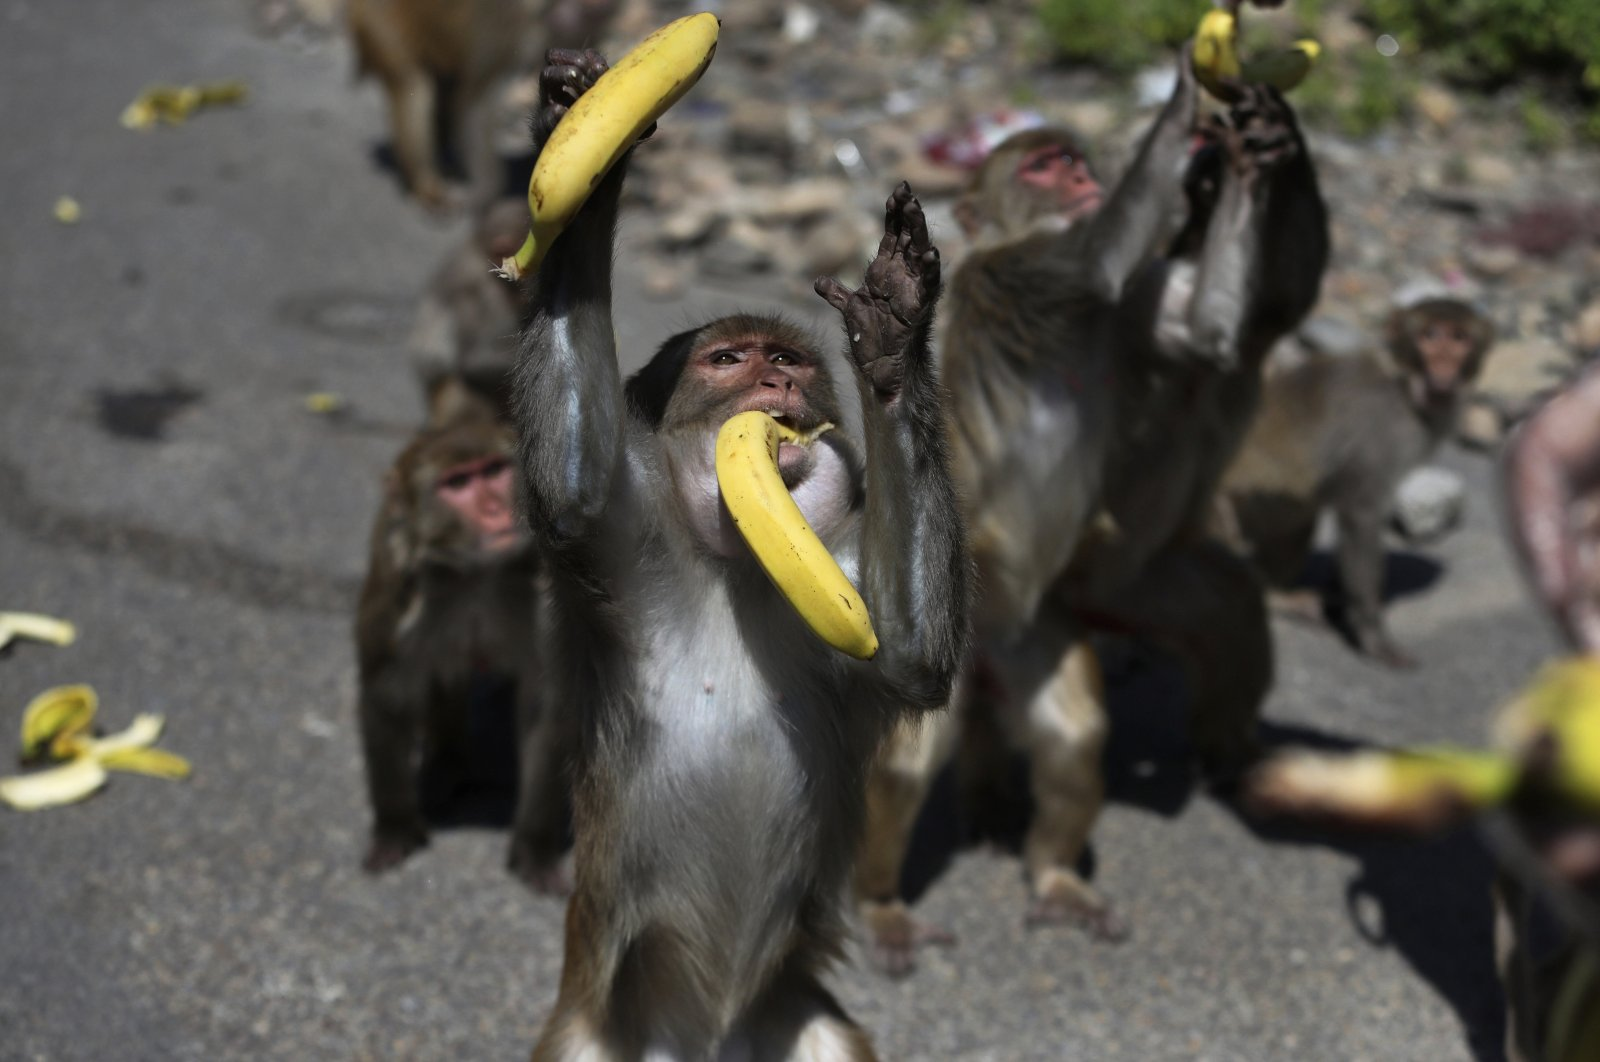 A monkey reaches out to grab bananas as a man feeds a group of monkeys during lockdown to prevent the spread of new coronavirus in Jammu, India, Wednesday, April 8, 2020. (AP Photo)